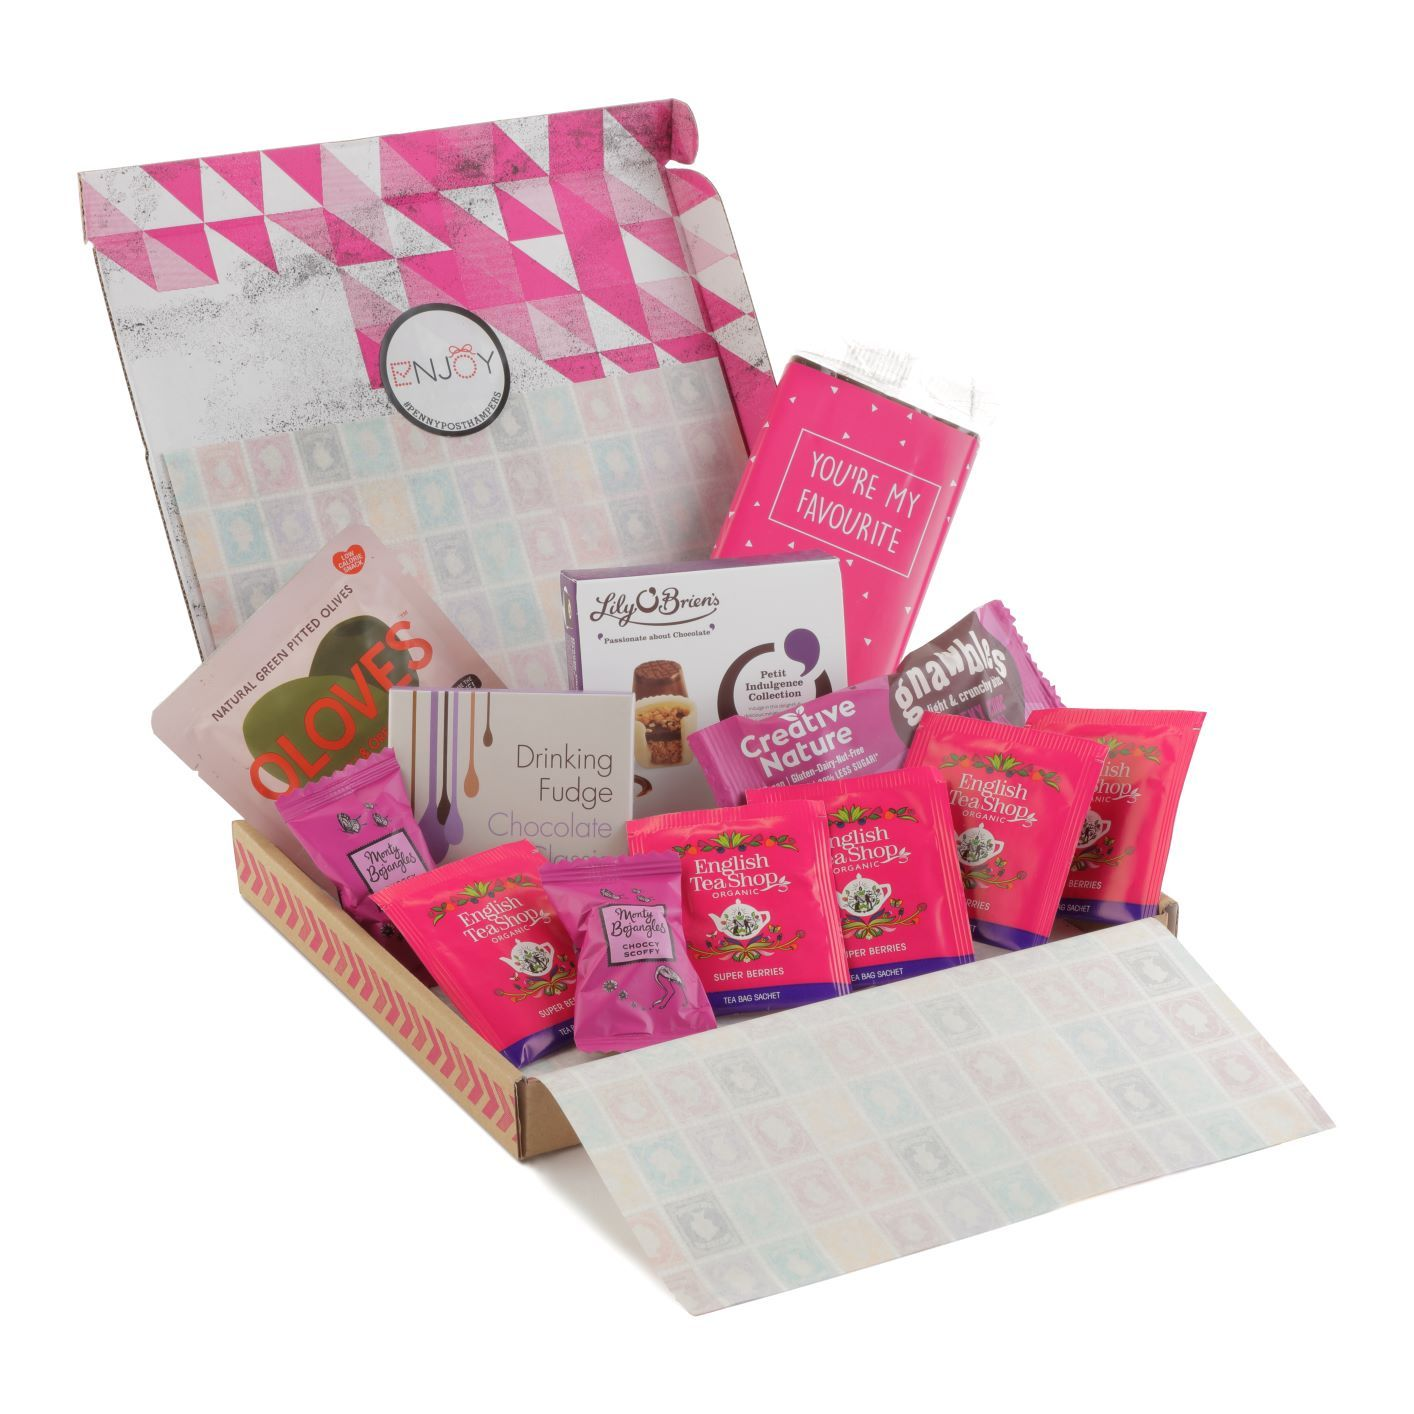 Penny Post Girlie Box